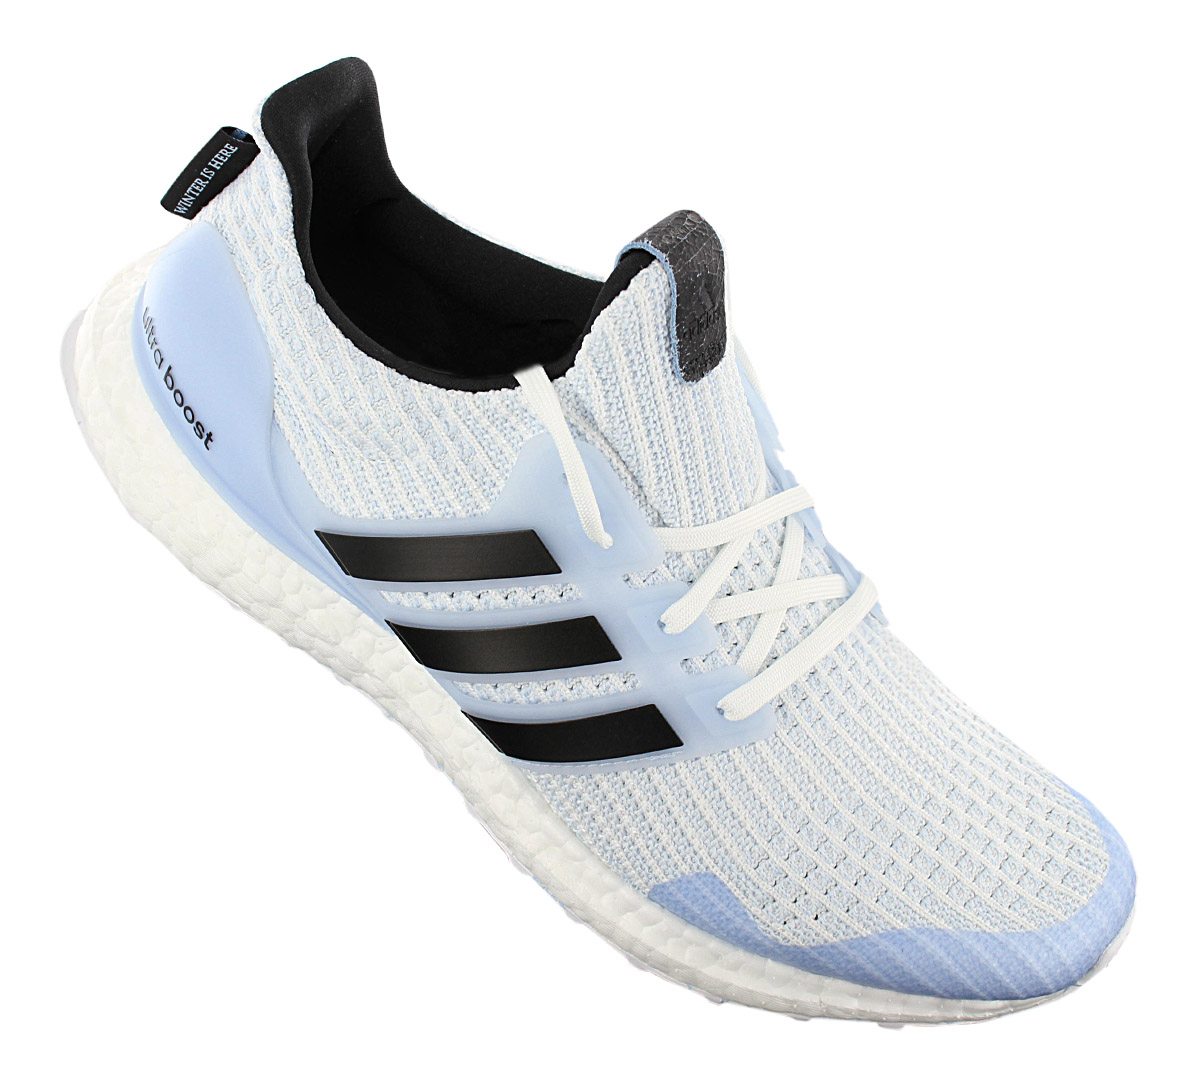 c3b893e62190f Adidas Ultra Boost x Got - Game of Thrones - White Walkers - Ee3708 ...